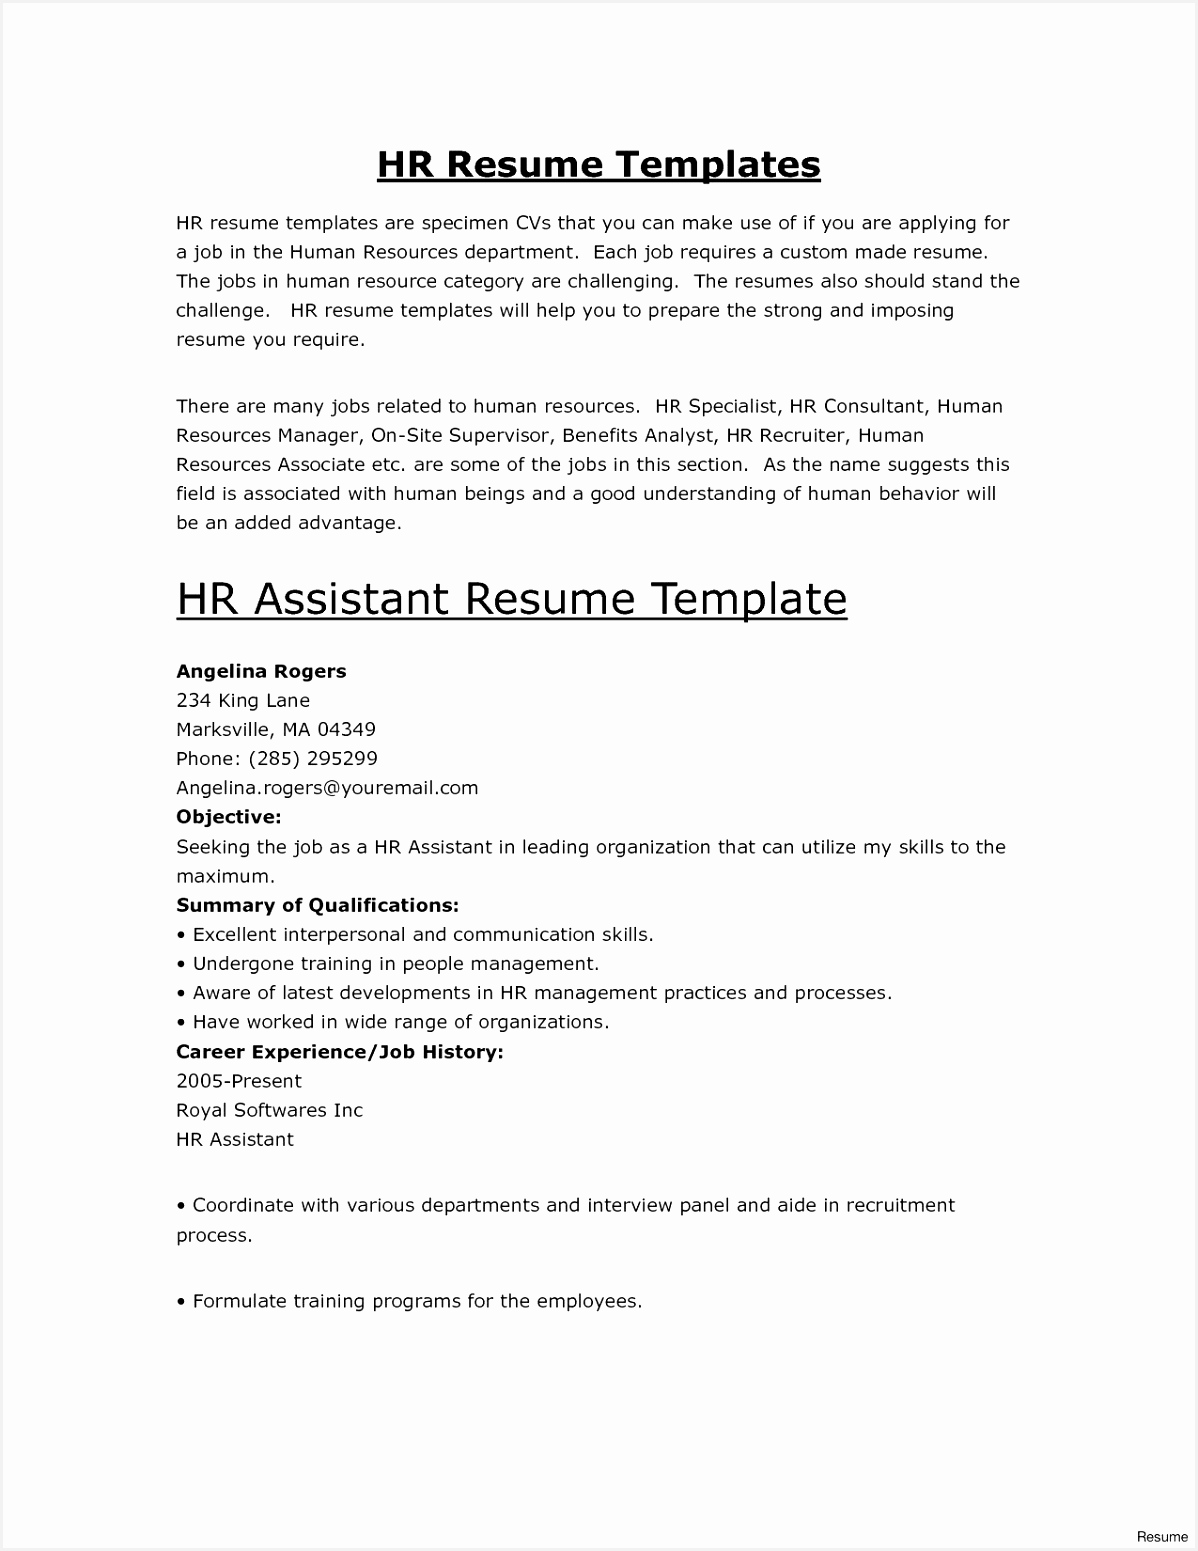 Template 0d Archives Resume Job Related Post 15511198gddsy